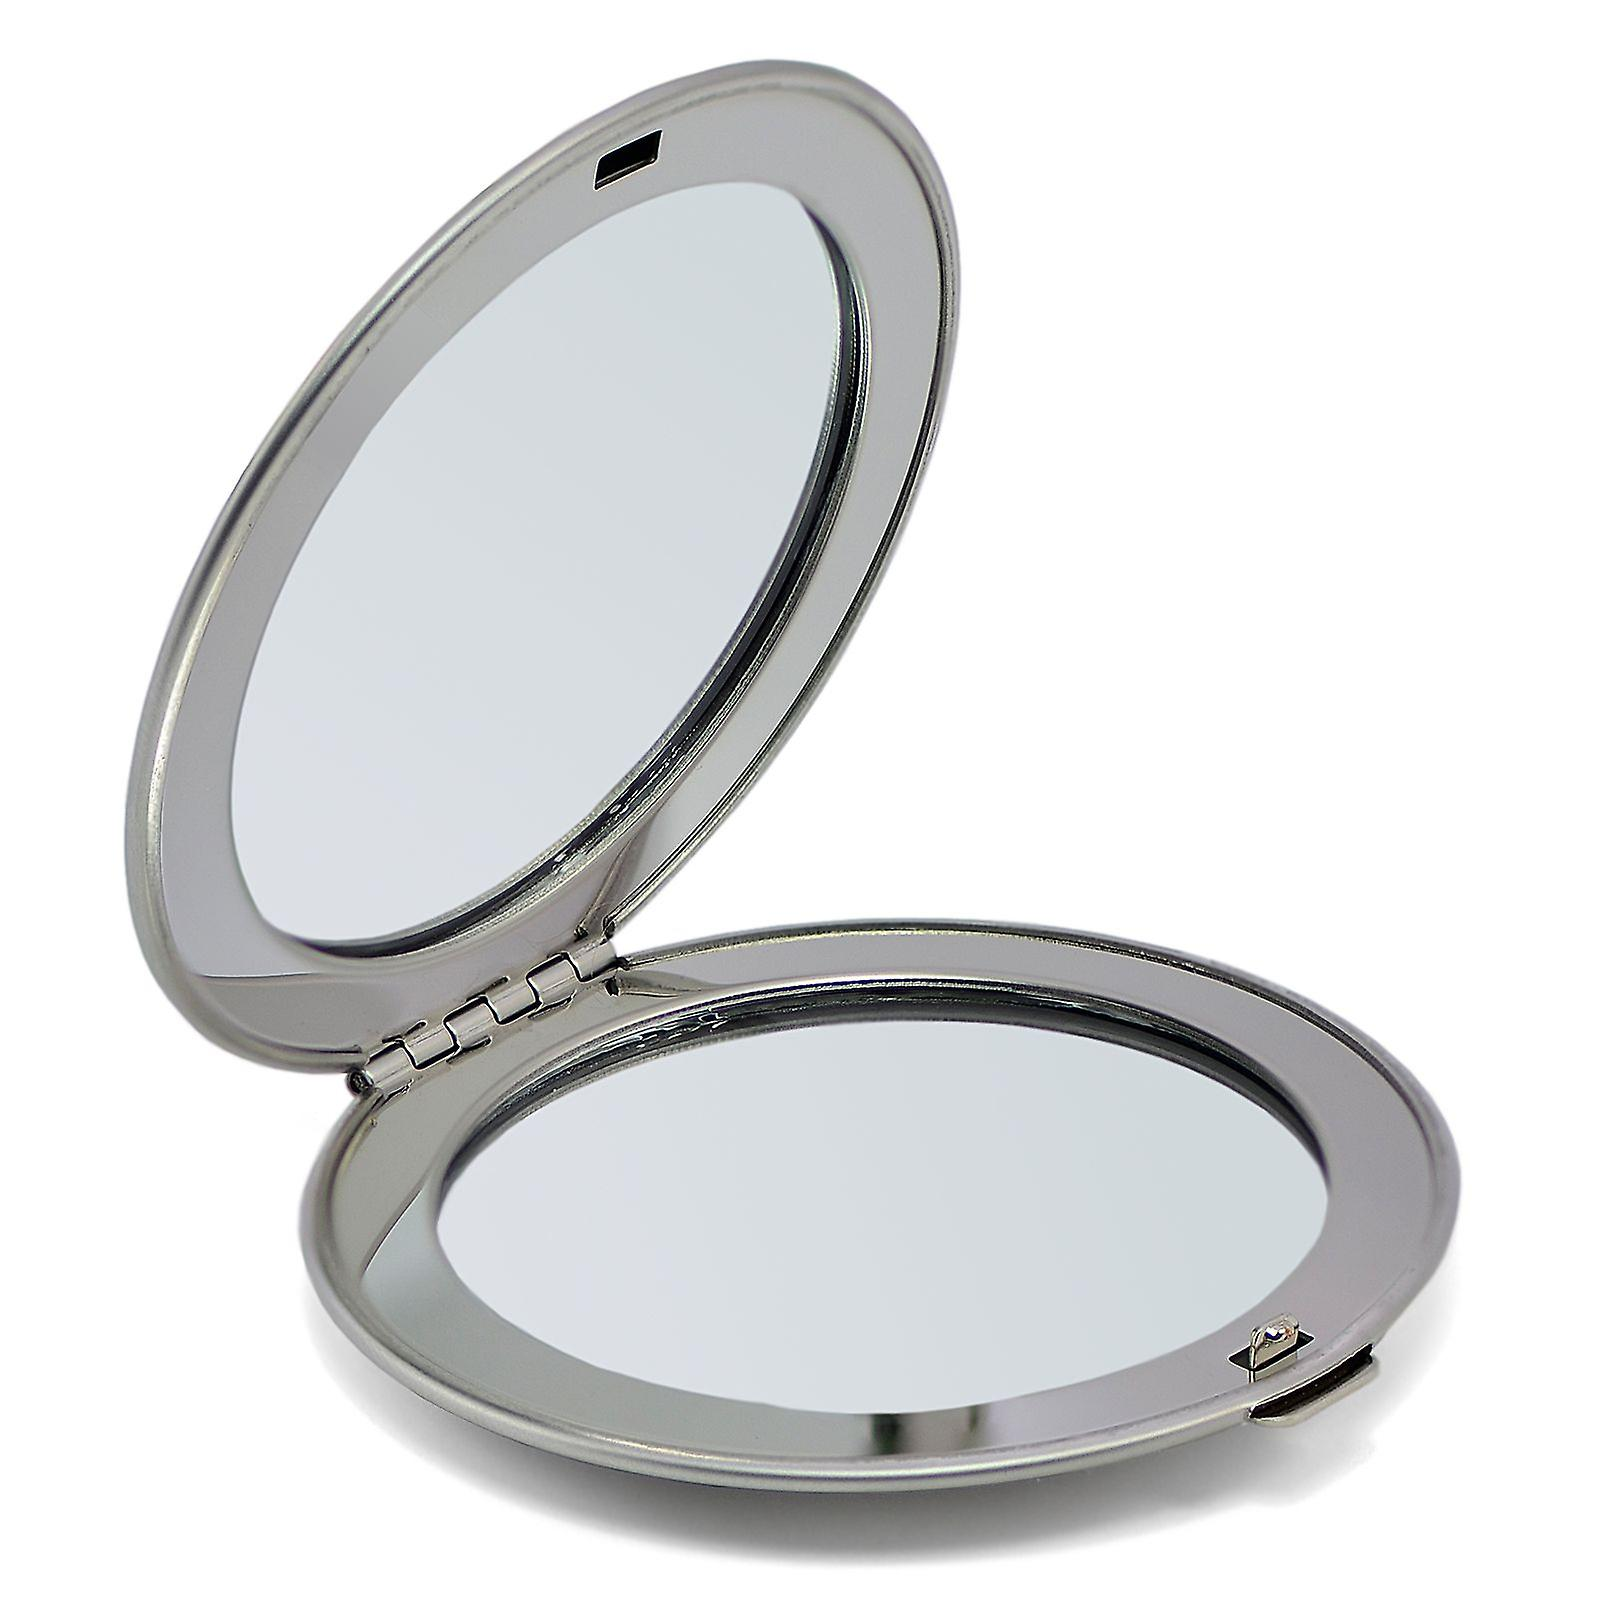 Luxury compact mirror ACS-08